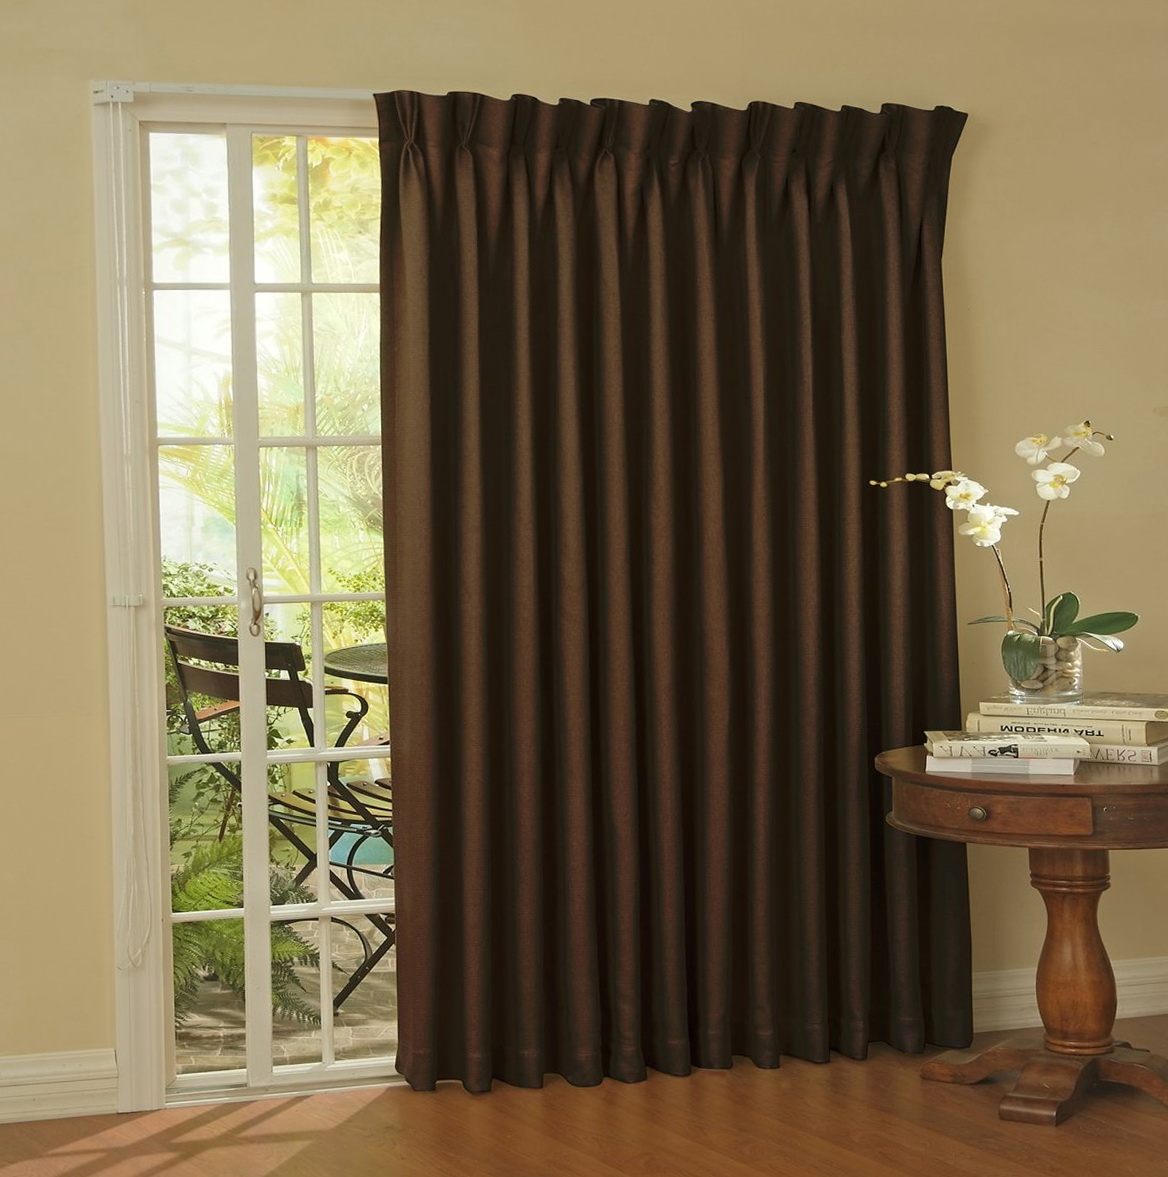 Sliding Door Curtain Ideas